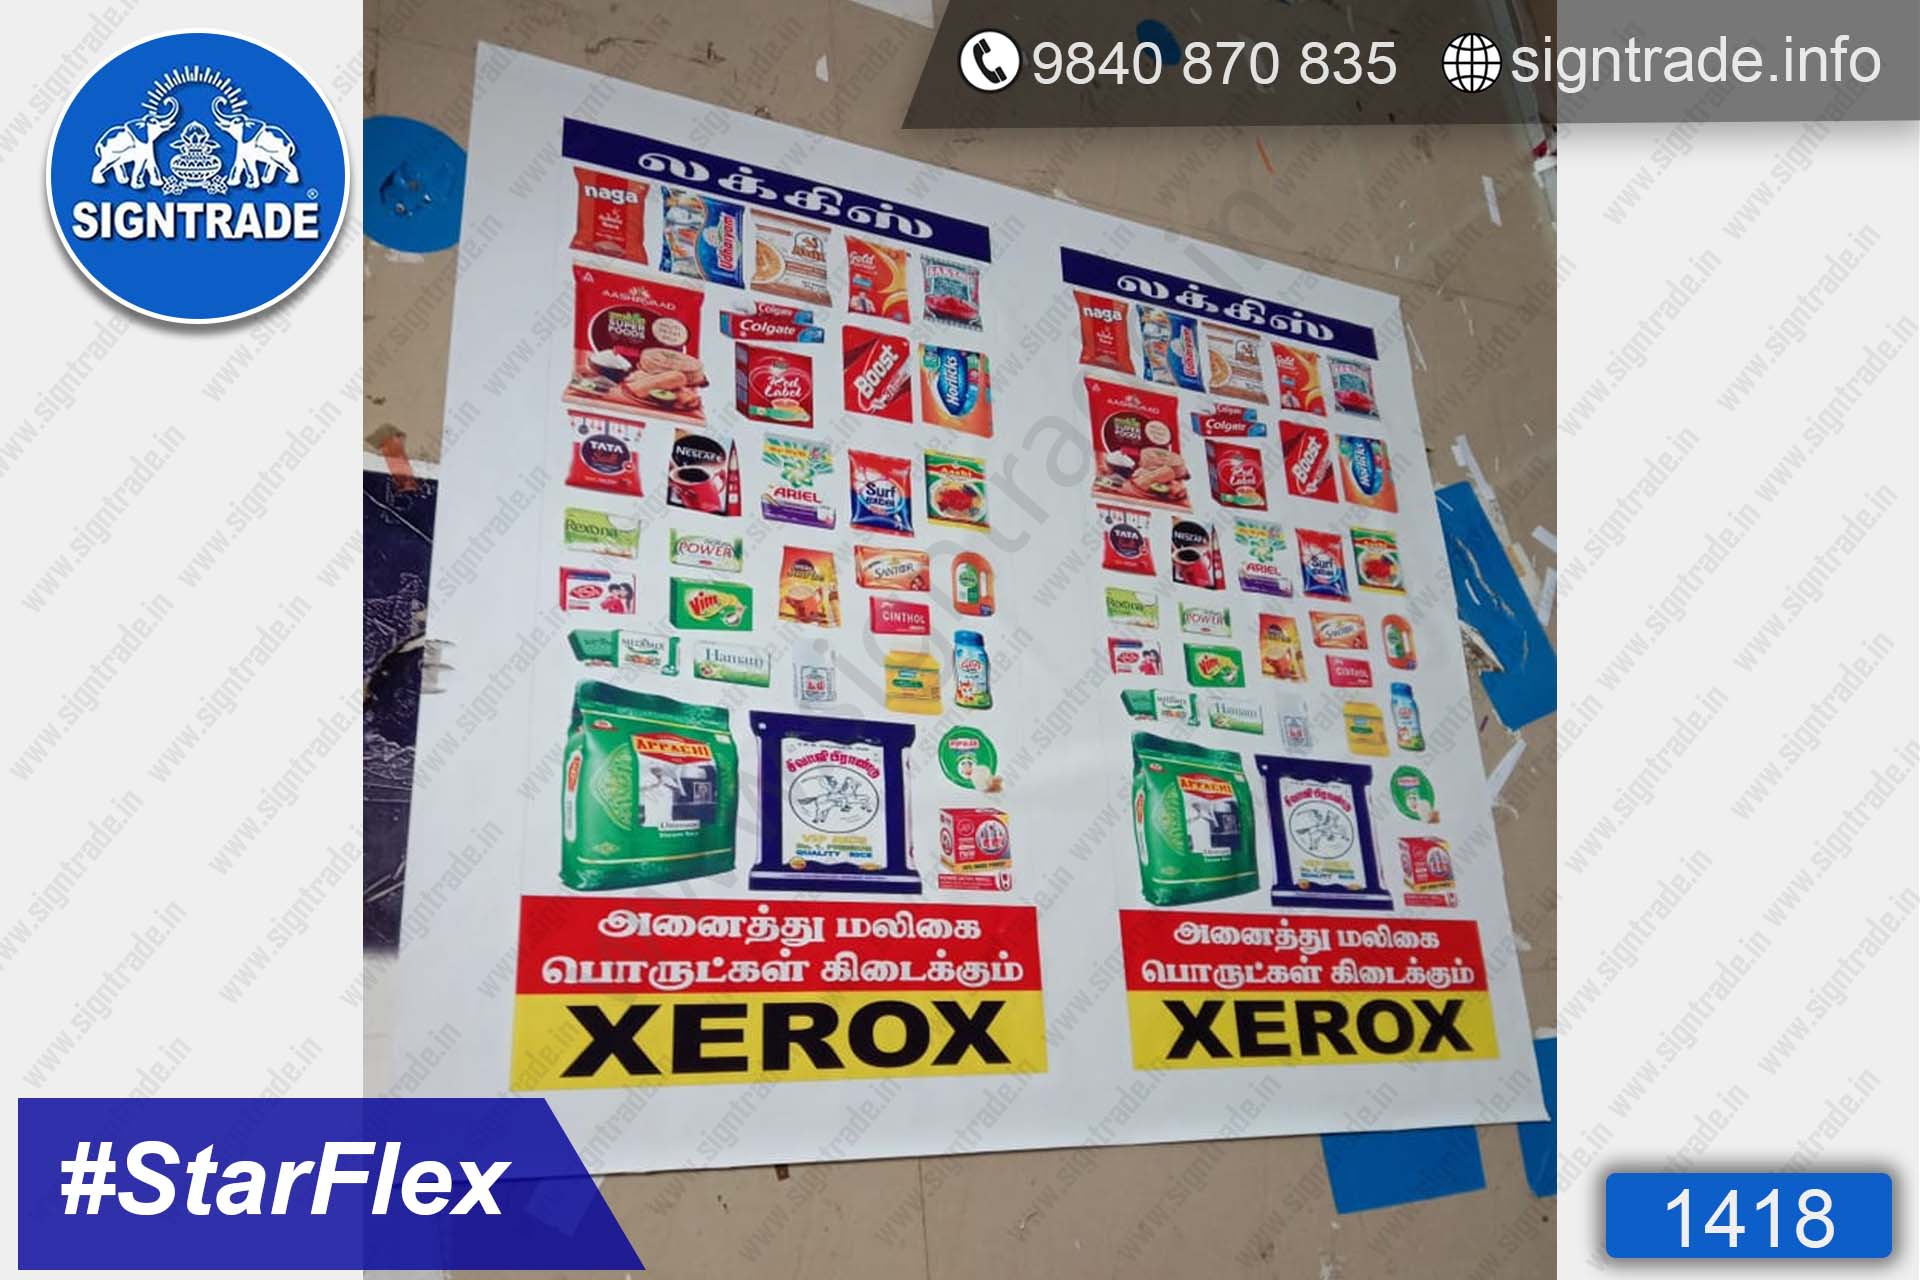 luckys xerox - 1418, Flex Board, Frontlit Flex Board, Star Frontlit Flex Board, Frontlit Flex Banners, Shop Front Flex Board, Shop Flex Board, Star Flex